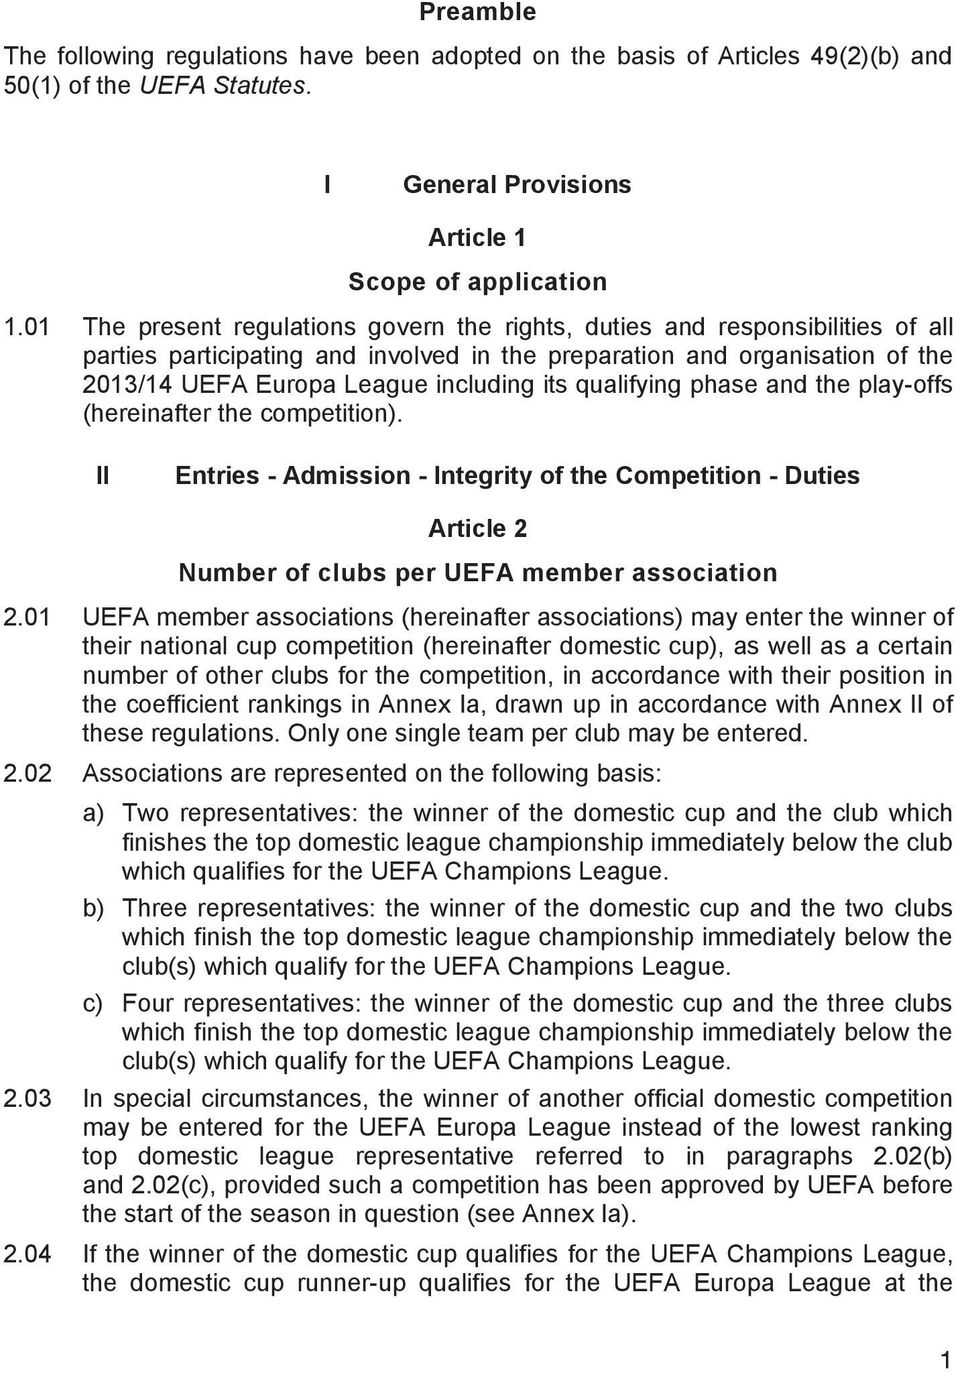 qualifying phase and the play-offs (hereinafter the competition). II Entries - Admission - Integrity of the Competition - Duties Article 2 Number of clubs per UEFA member association 2.